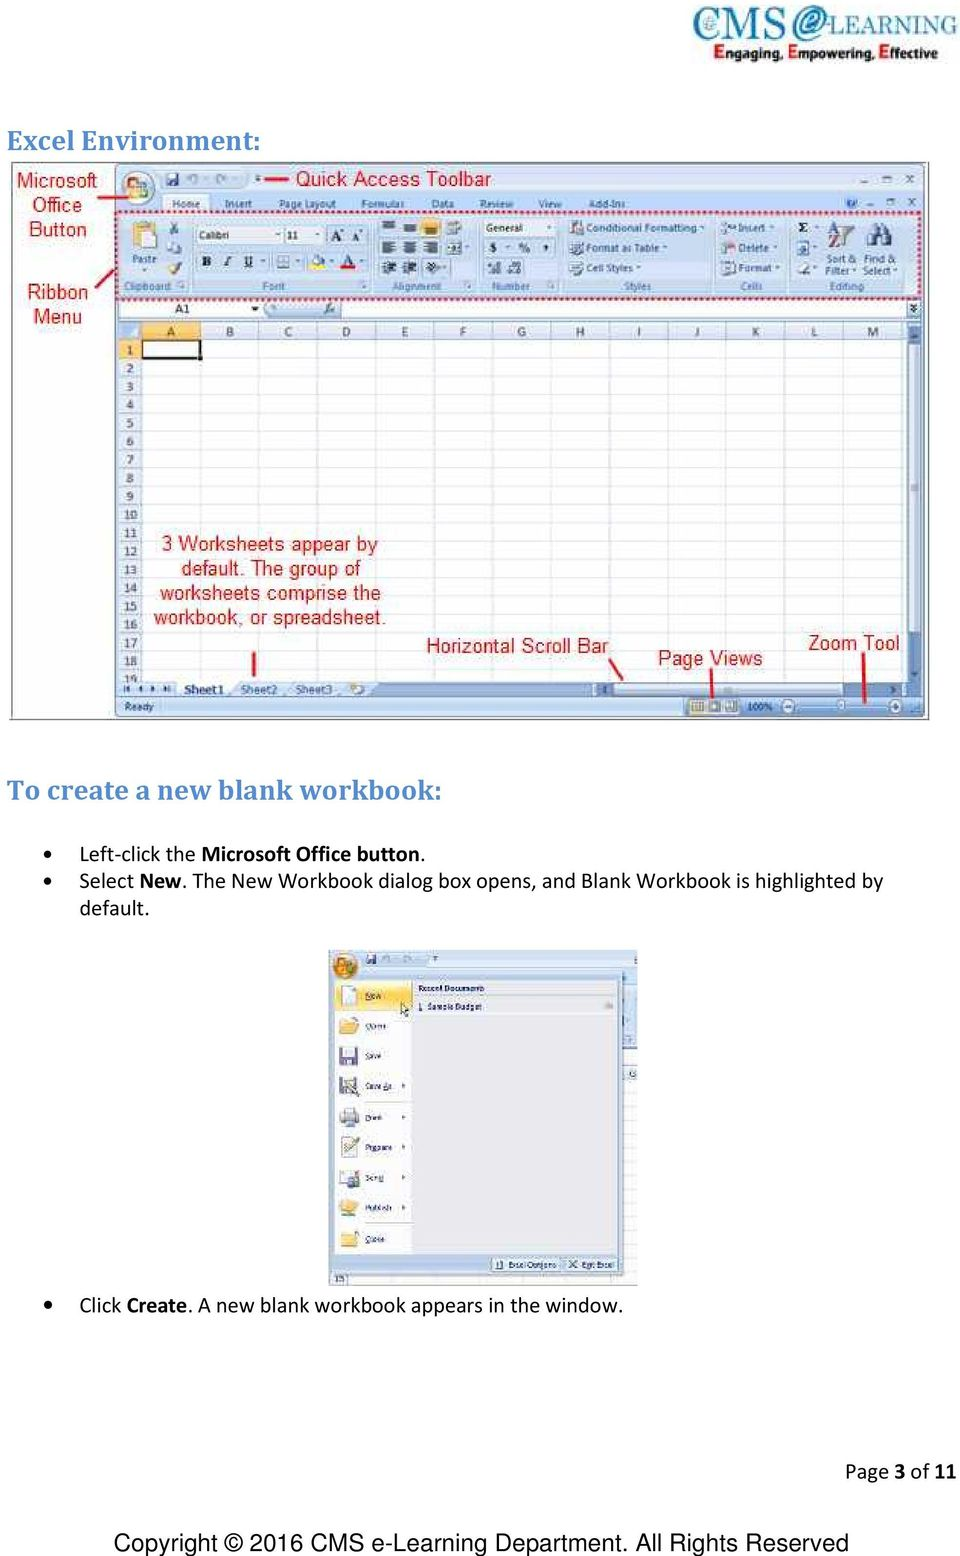 The New Workbook dialog box opens, and Blank Workbook is